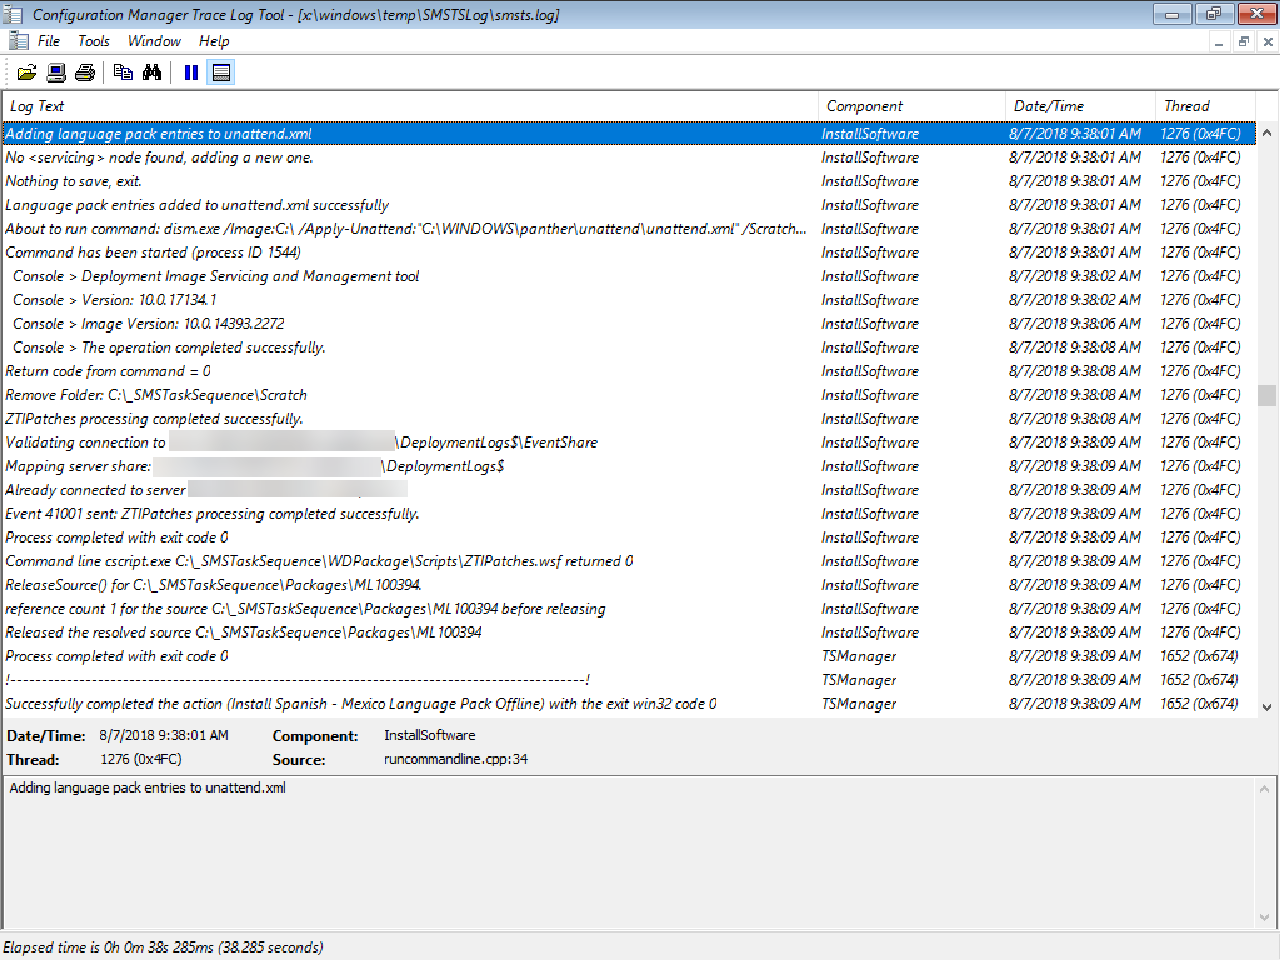 How can I install Windows 10 language packs offline with an